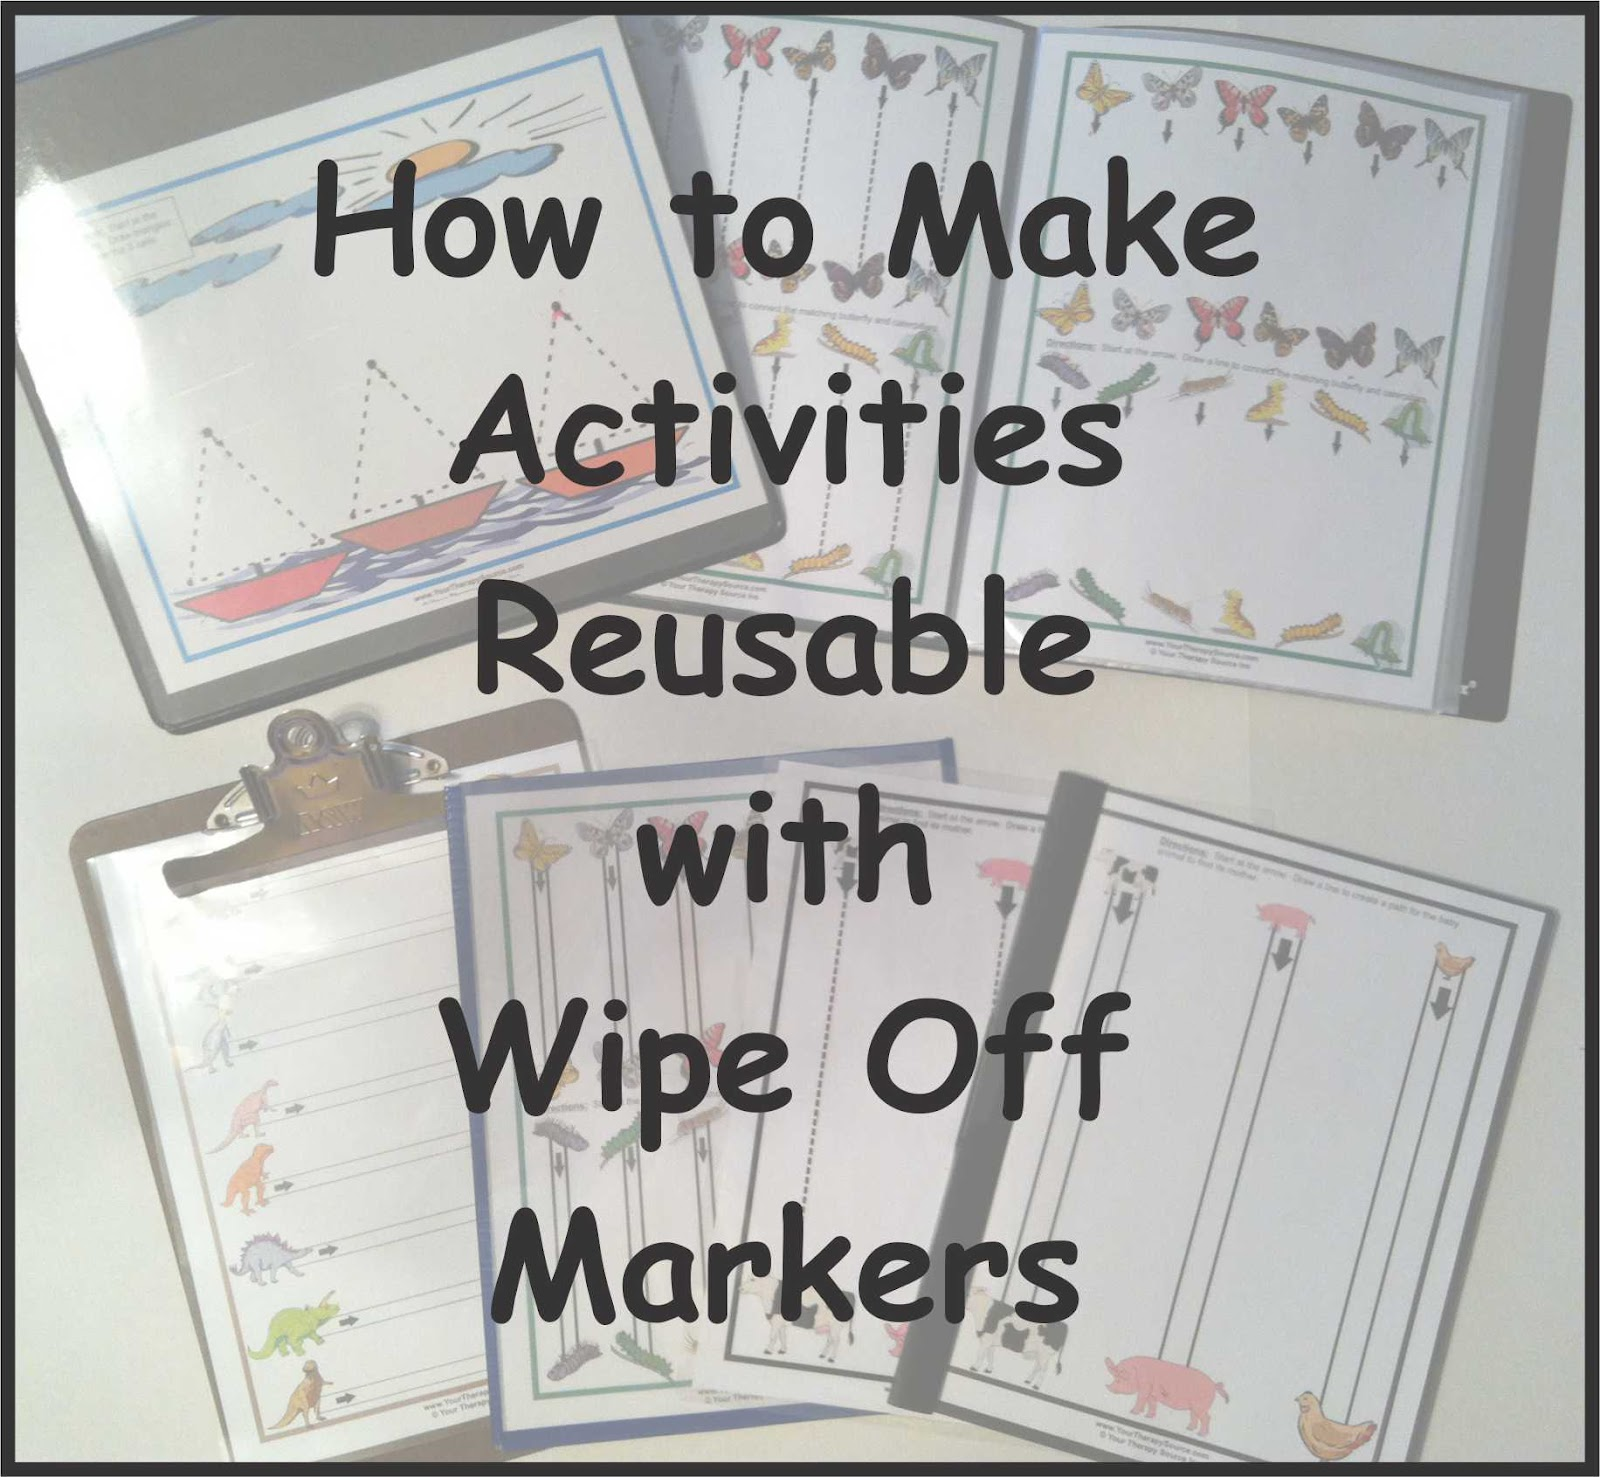 Growing Play How To Make Activities Reusable With Wipe